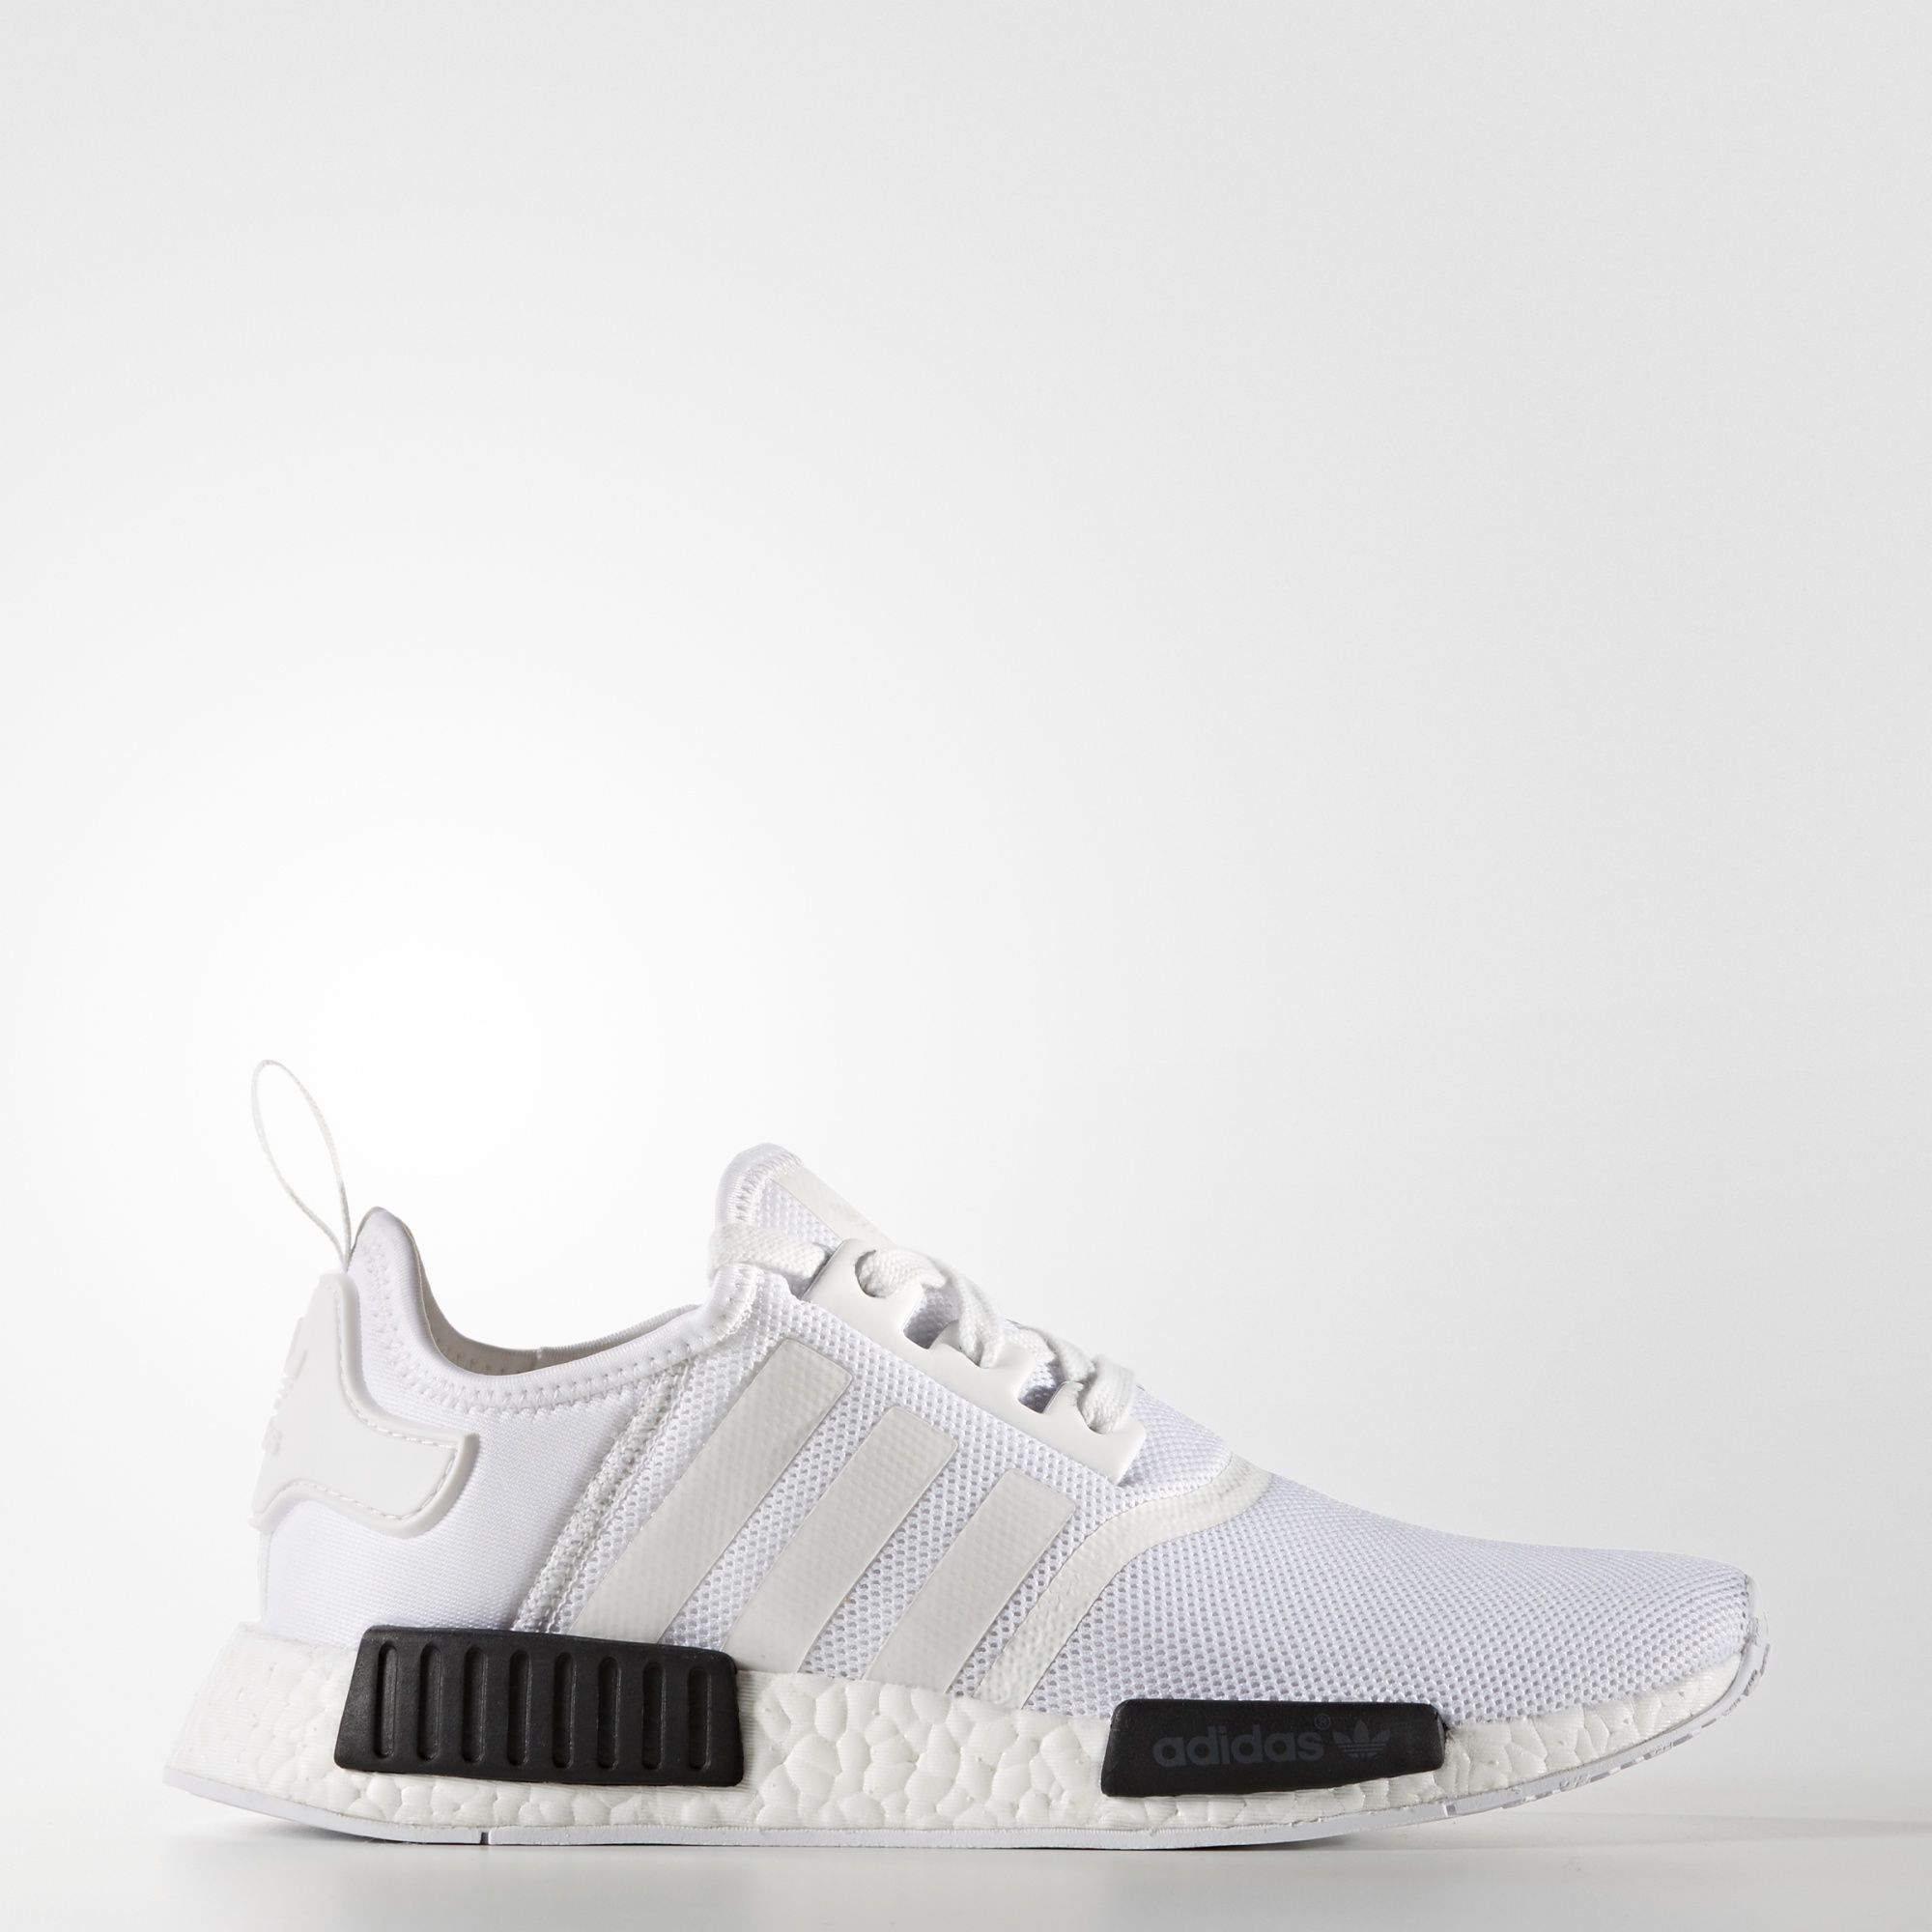 huge discount 1c5a1 a9dc6 Adidas NMD R1  White Core Black , Men s Fashion, Footwear on Carousell